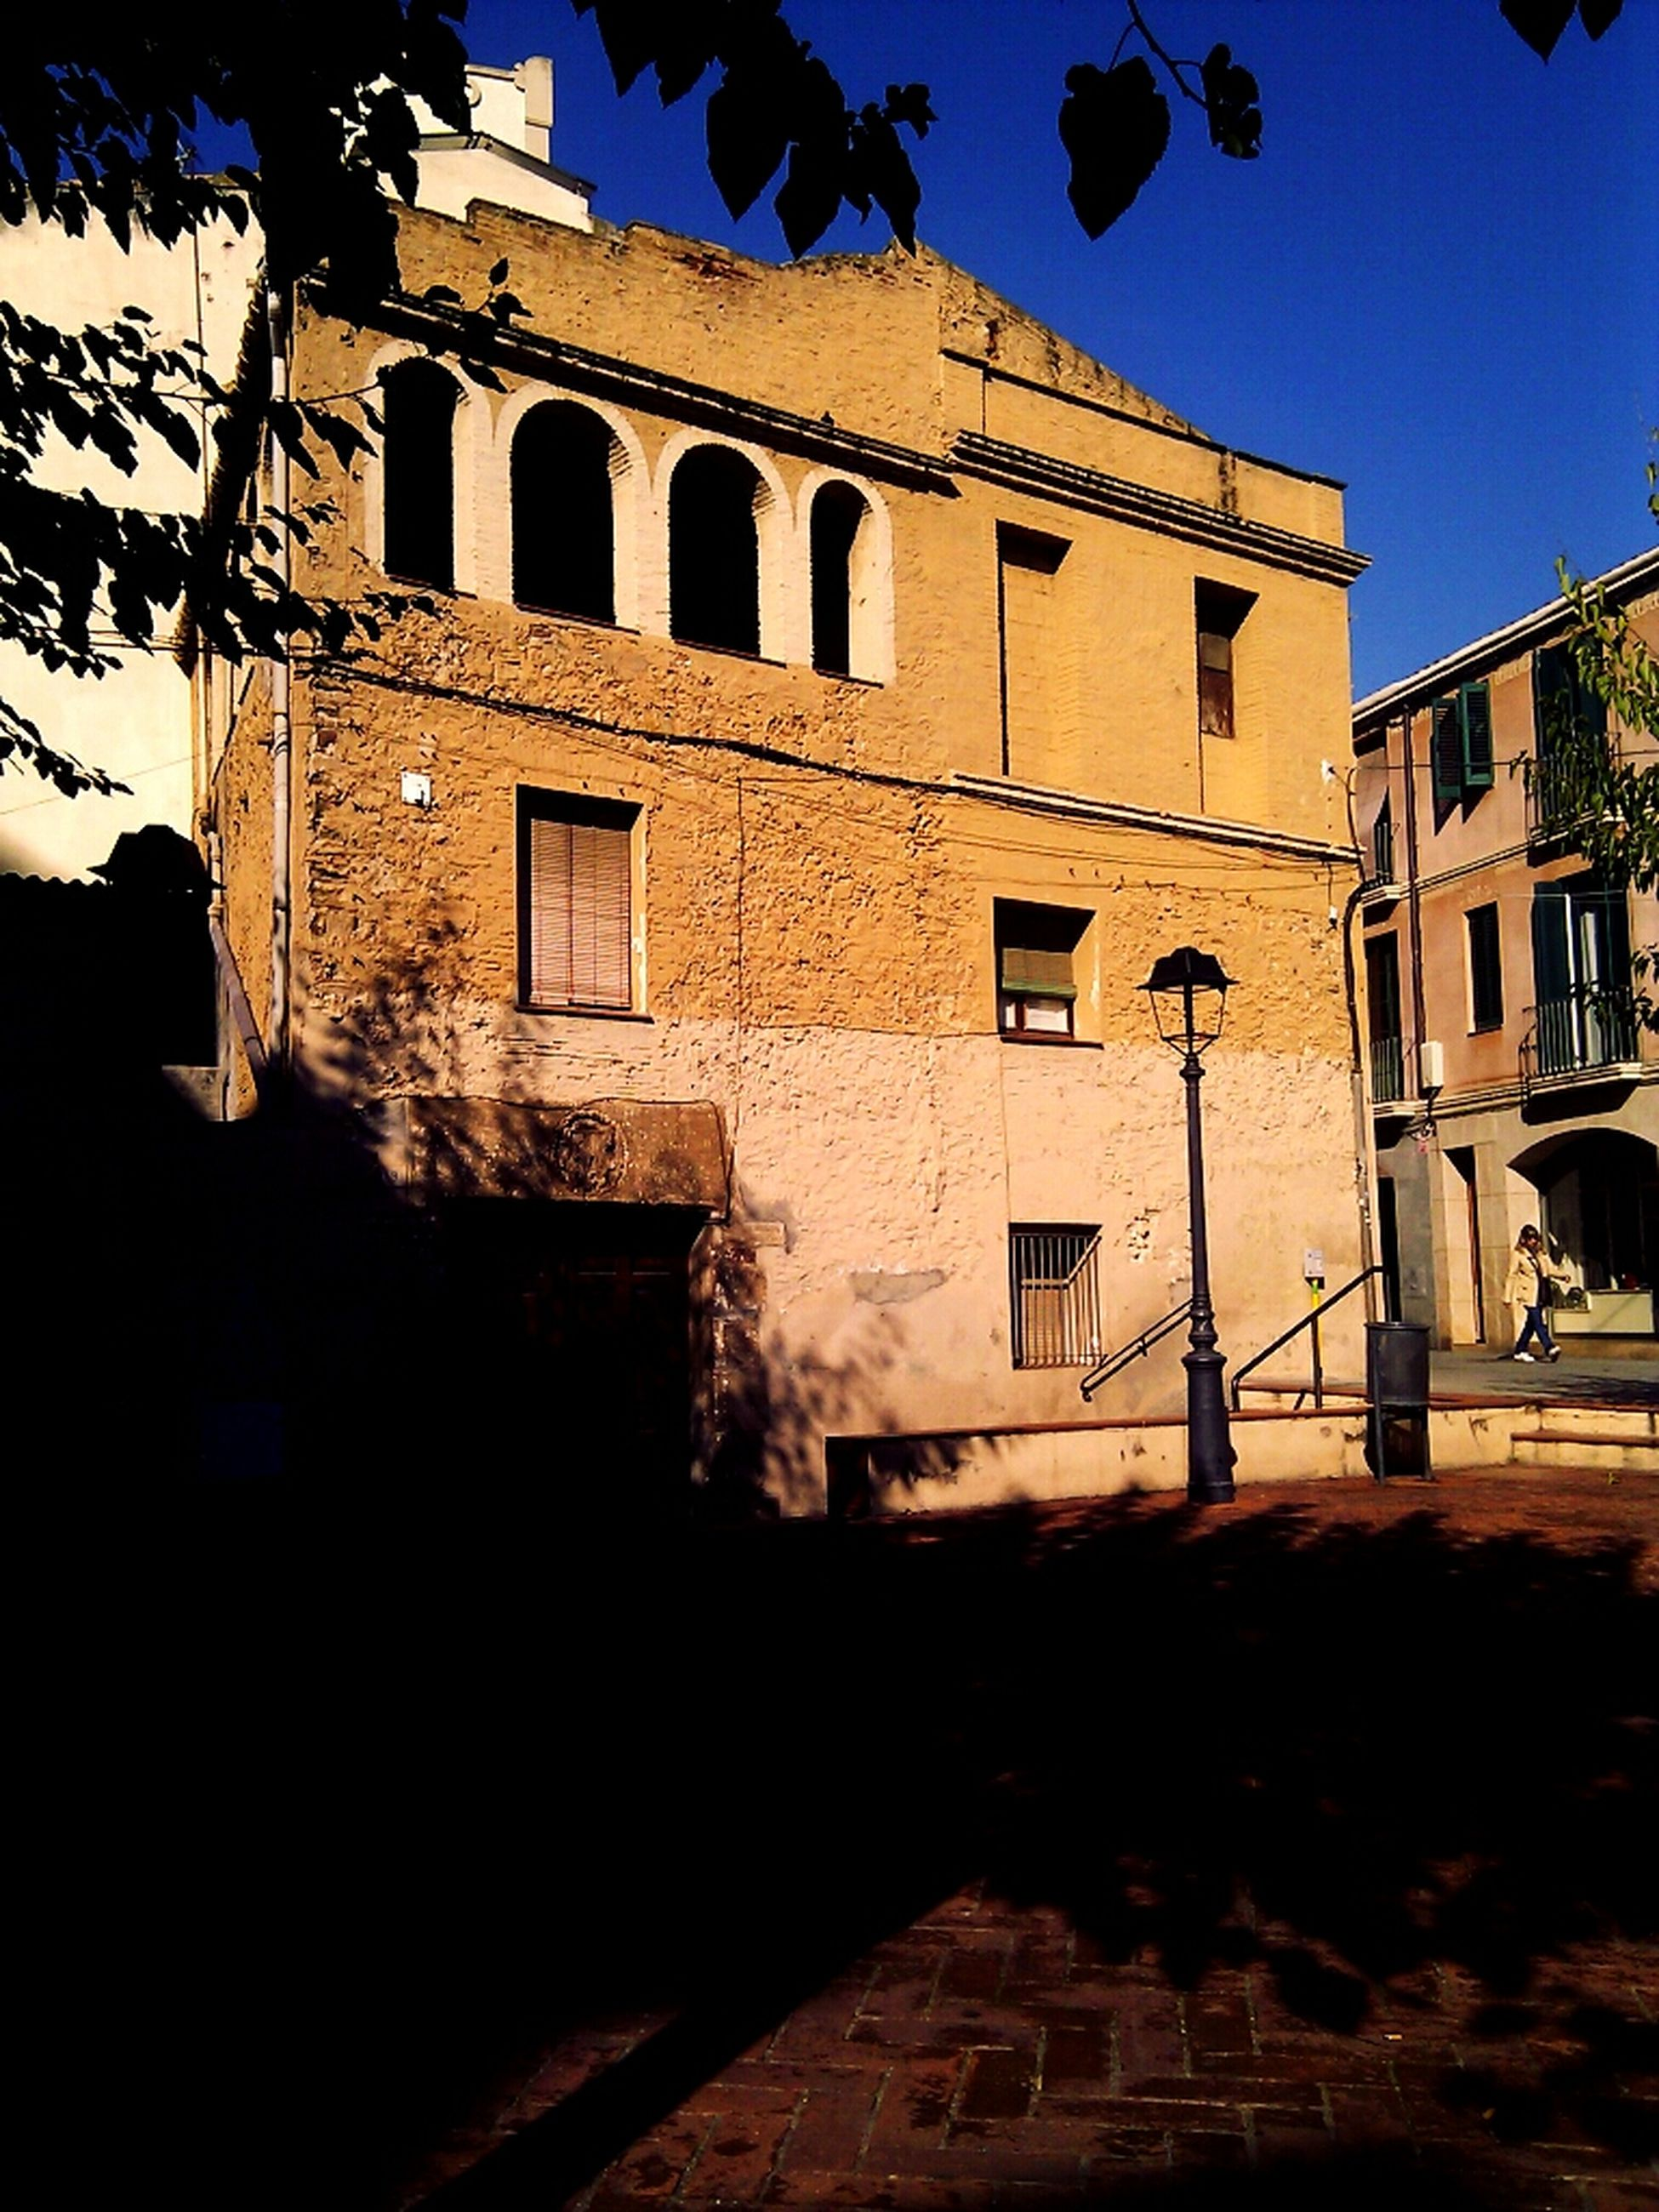 architecture, built structure, building exterior, history, window, building, low angle view, old, residential building, residential structure, arch, sky, clear sky, old town, shadow, sunlight, facade, historic, day, house